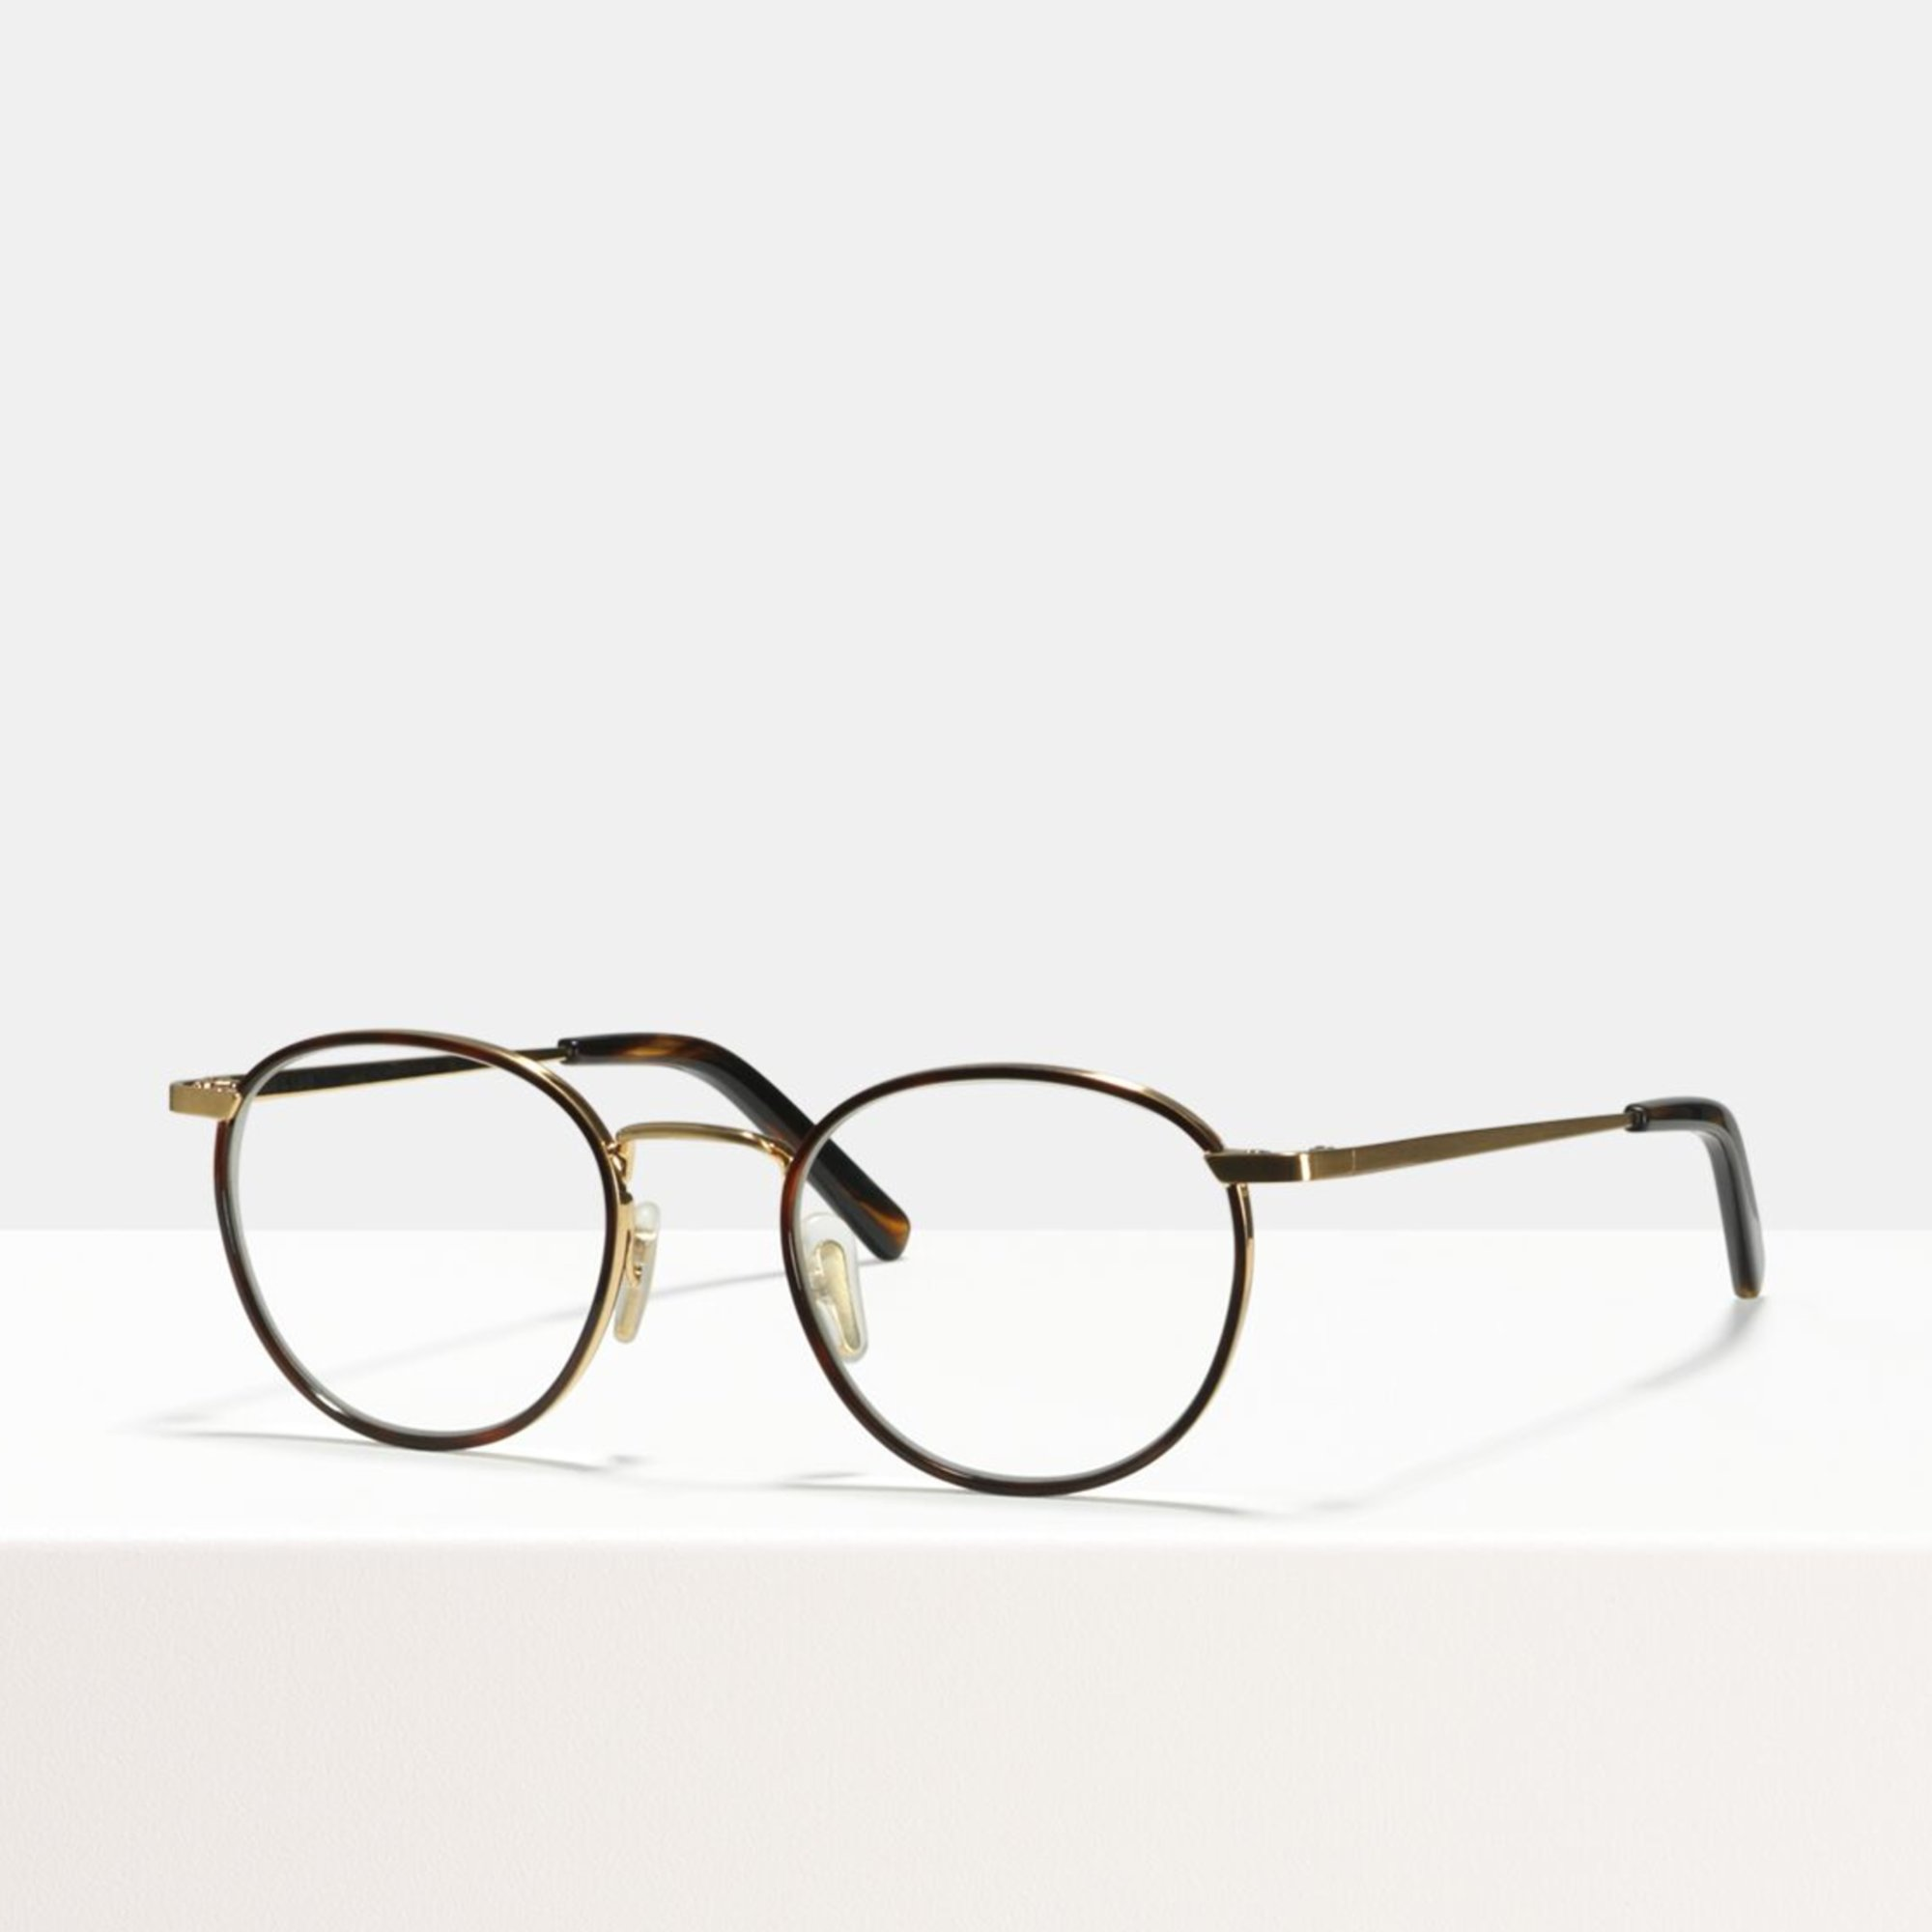 Ace & Tate Glasses | round metal in Beige, Brown